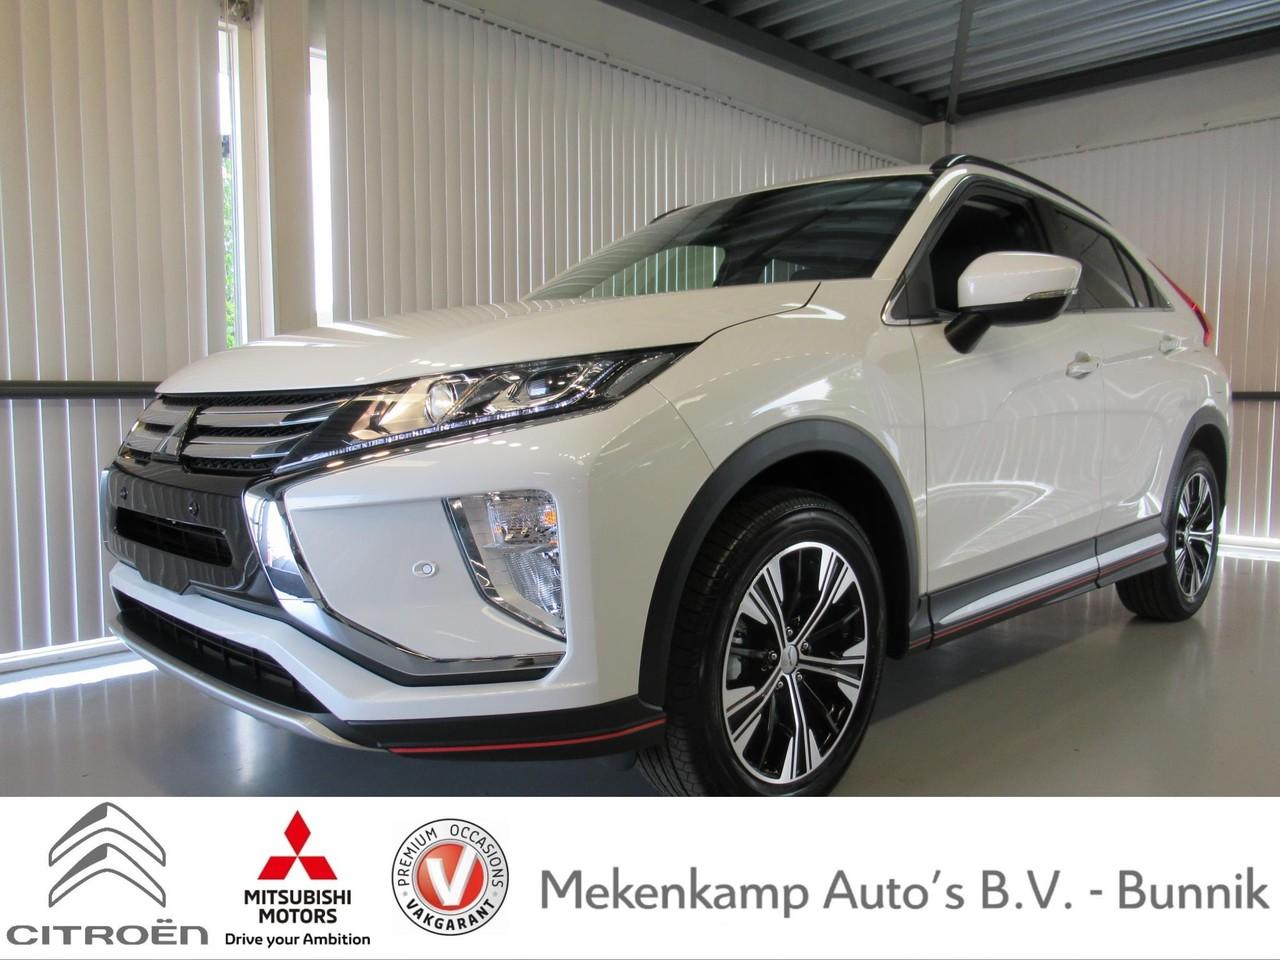 """Mitsubishi Eclipse cross 1.5 di-t intense s 18""""/leder/stoelverwarming/apple carplay & android auto/camera/pdc v+a/climate/cruise/bluetooth"""